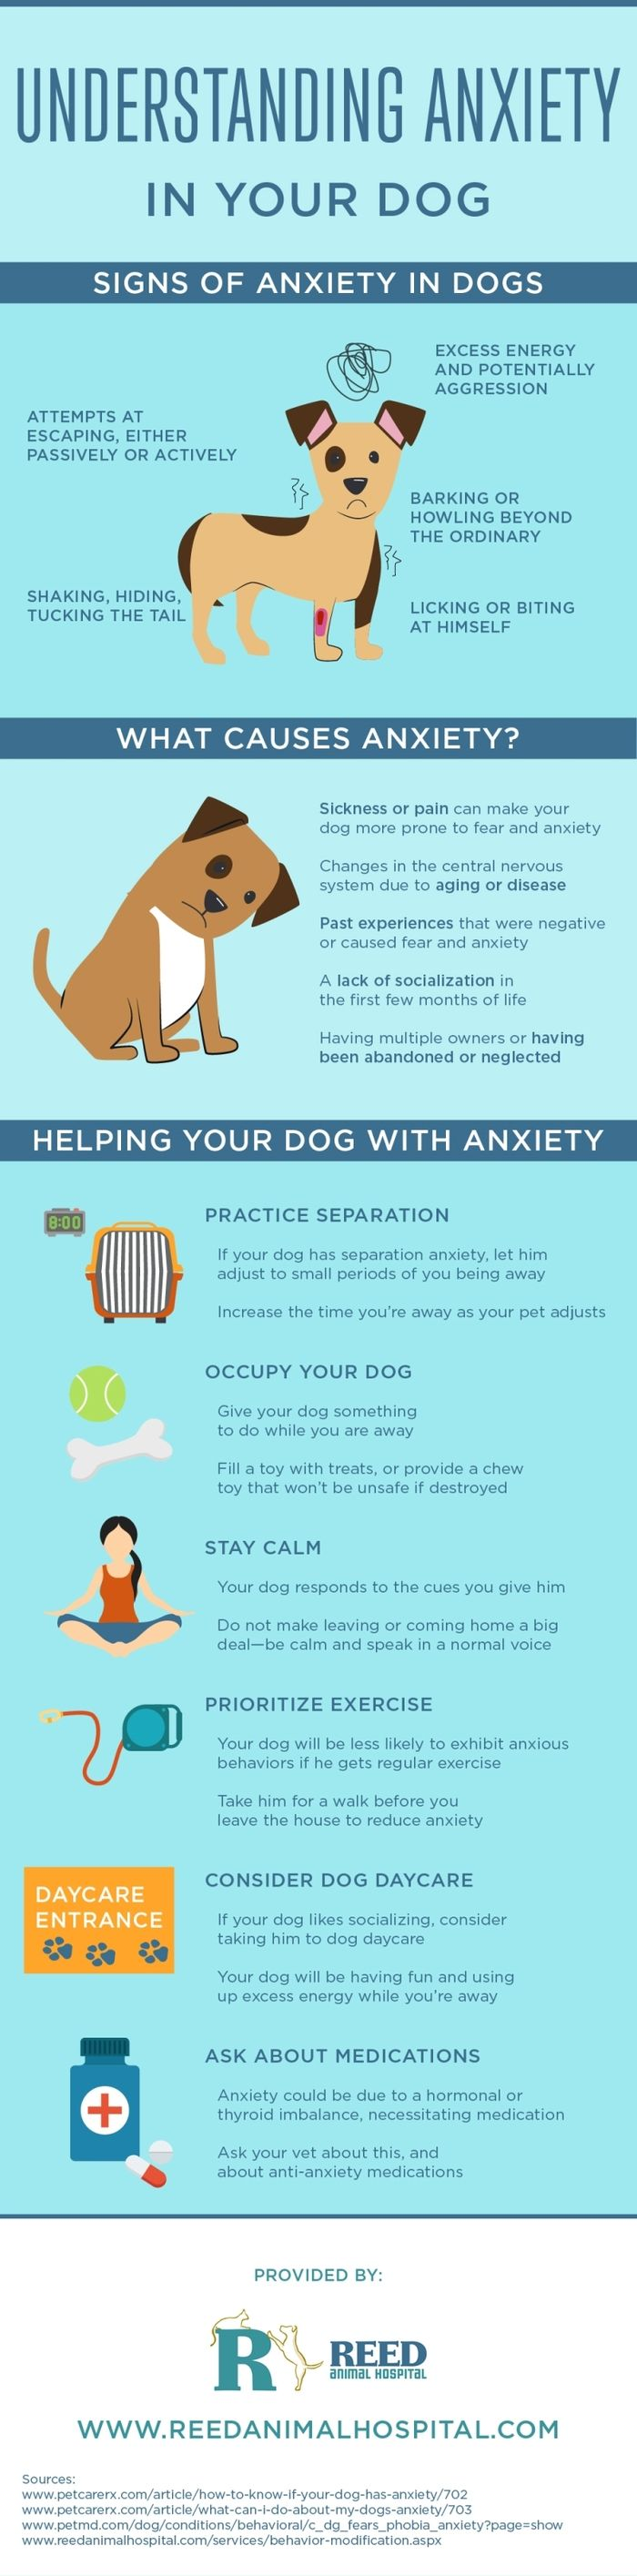 How To Help Your Dog Deal With Anxiety - Infographic